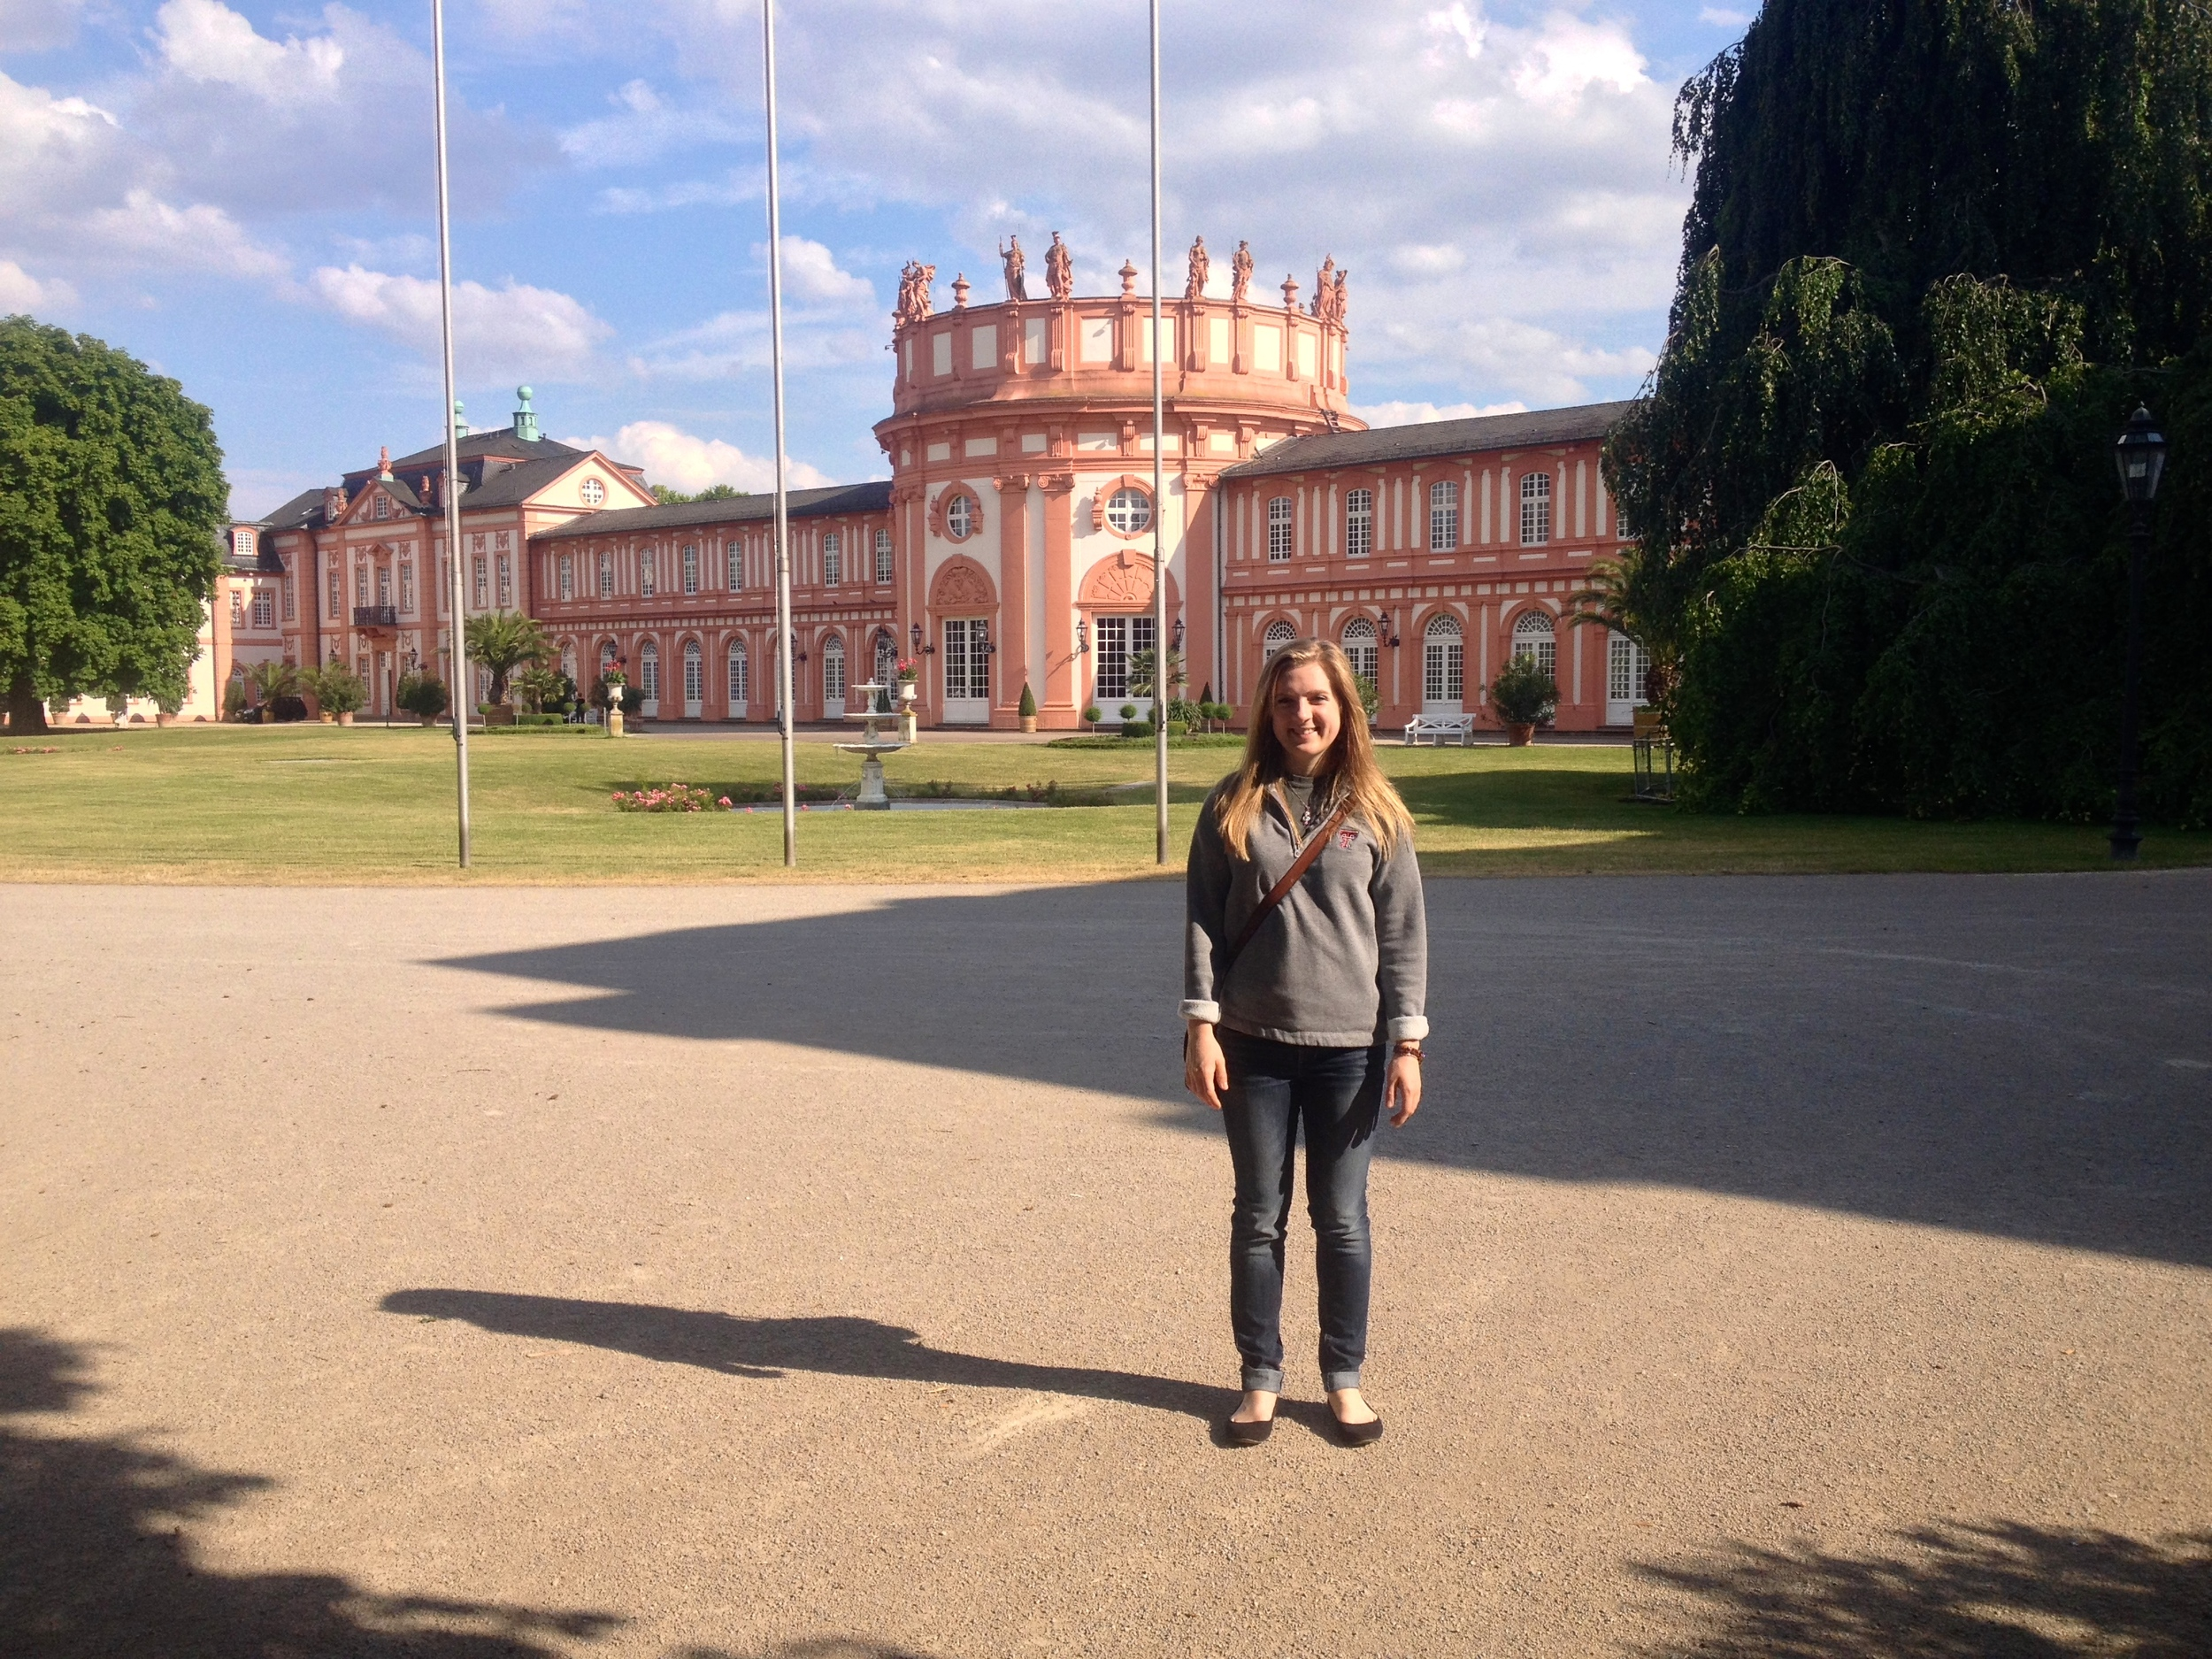 A beautiful Schloß and my travel-weary self